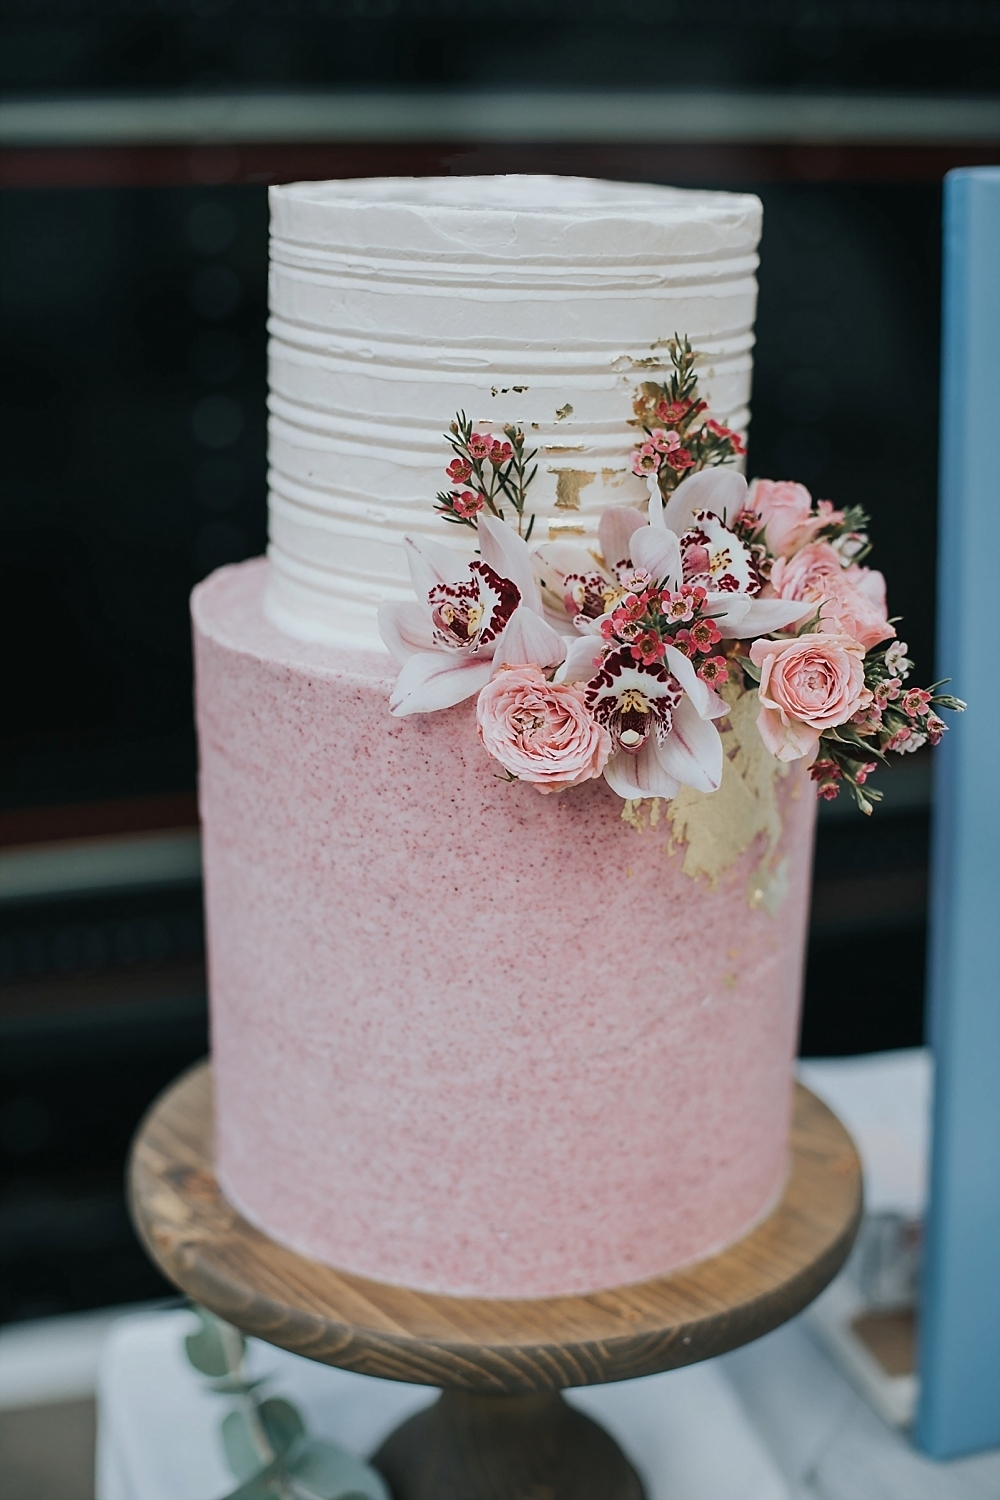 buttercream wedding cakes  raquo  Iced Wedding Cakes From Top UK Wedding Cake Makers RMW The List Pink   White Iced Wedding Cake By The Sparkling Spatula    Image By Poppy  Carter